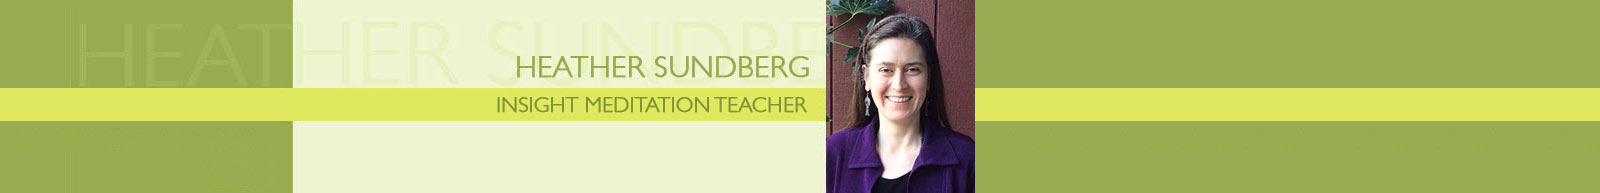 Heather Sundberg - Insight Meditation Teacher